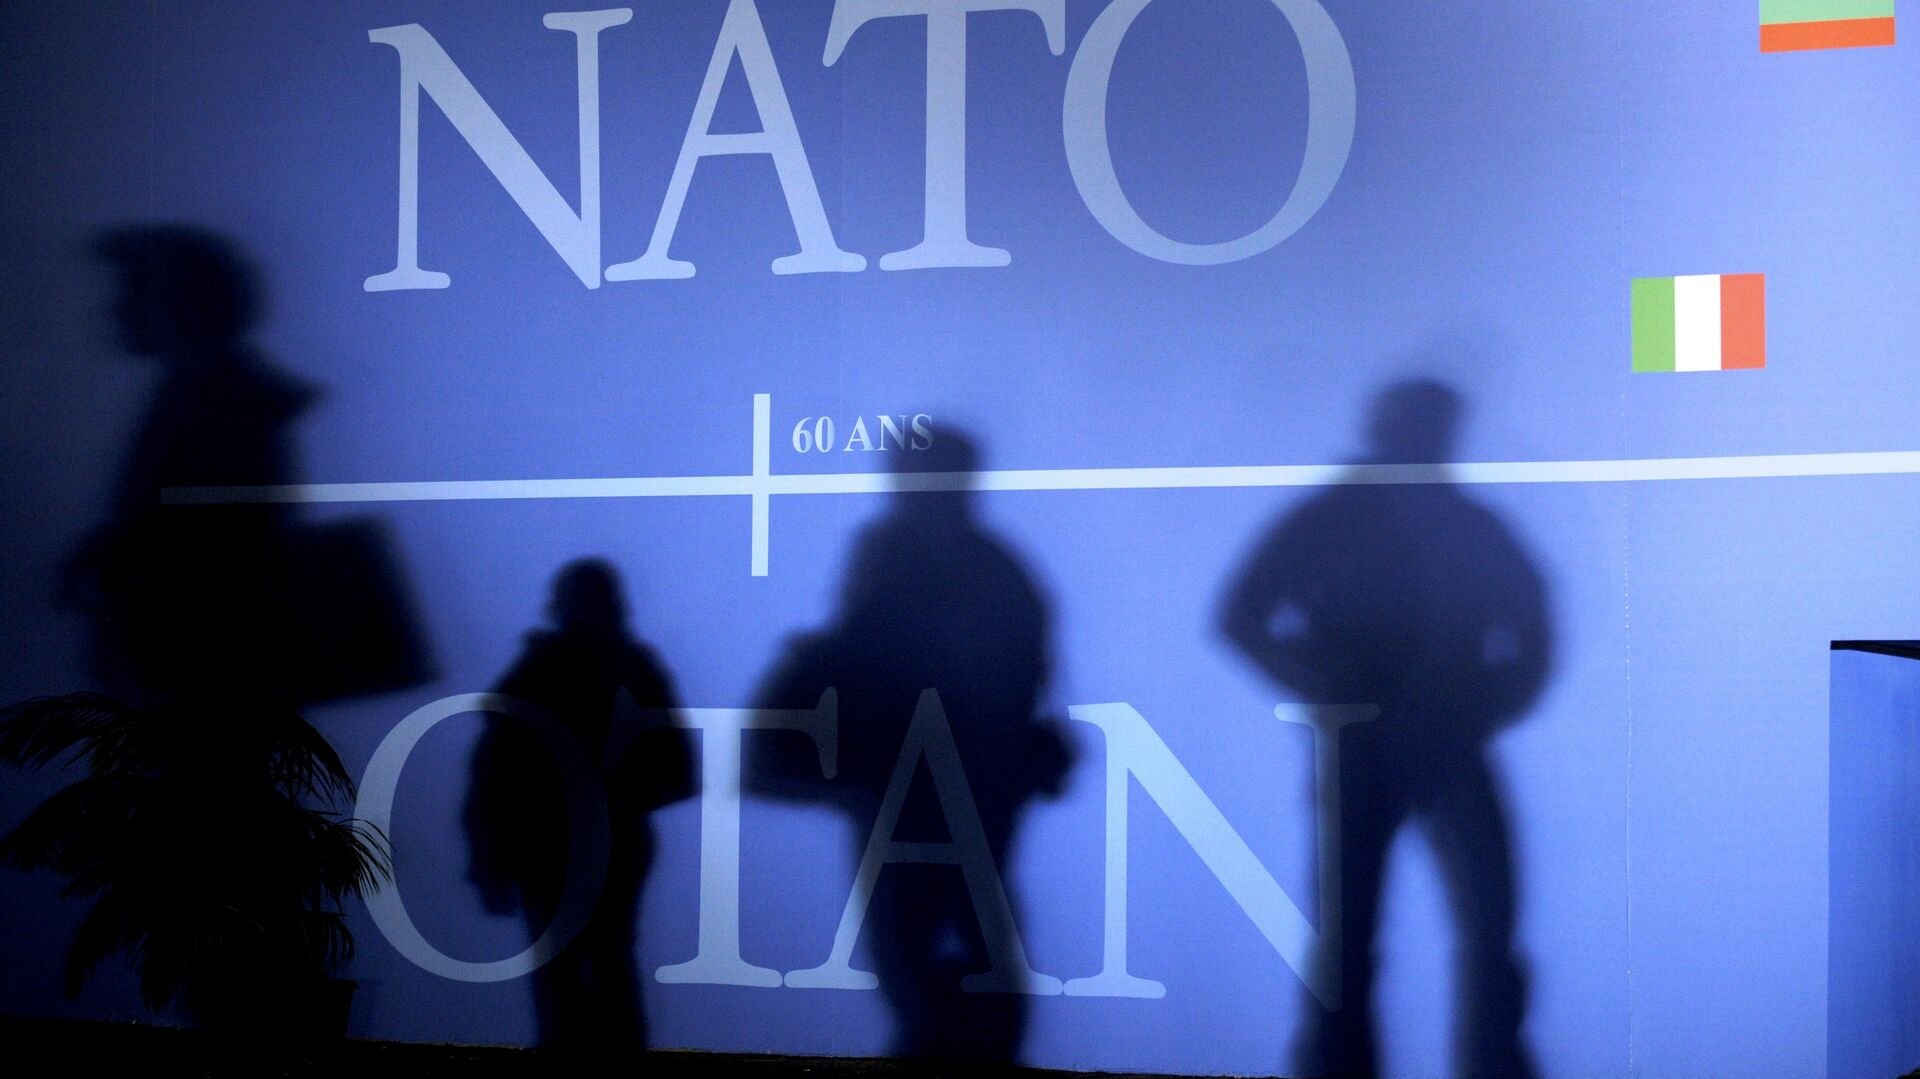 This April 2, 2009 file photo shows shadows cast on a wall decorated with the NATO logo and flags of NATO countries in Strasbourg, eastern France, before the start of the NATO summit which marked the organisation's 60th anniversary.  - Sputnik Italia, 1920, 13.06.2021